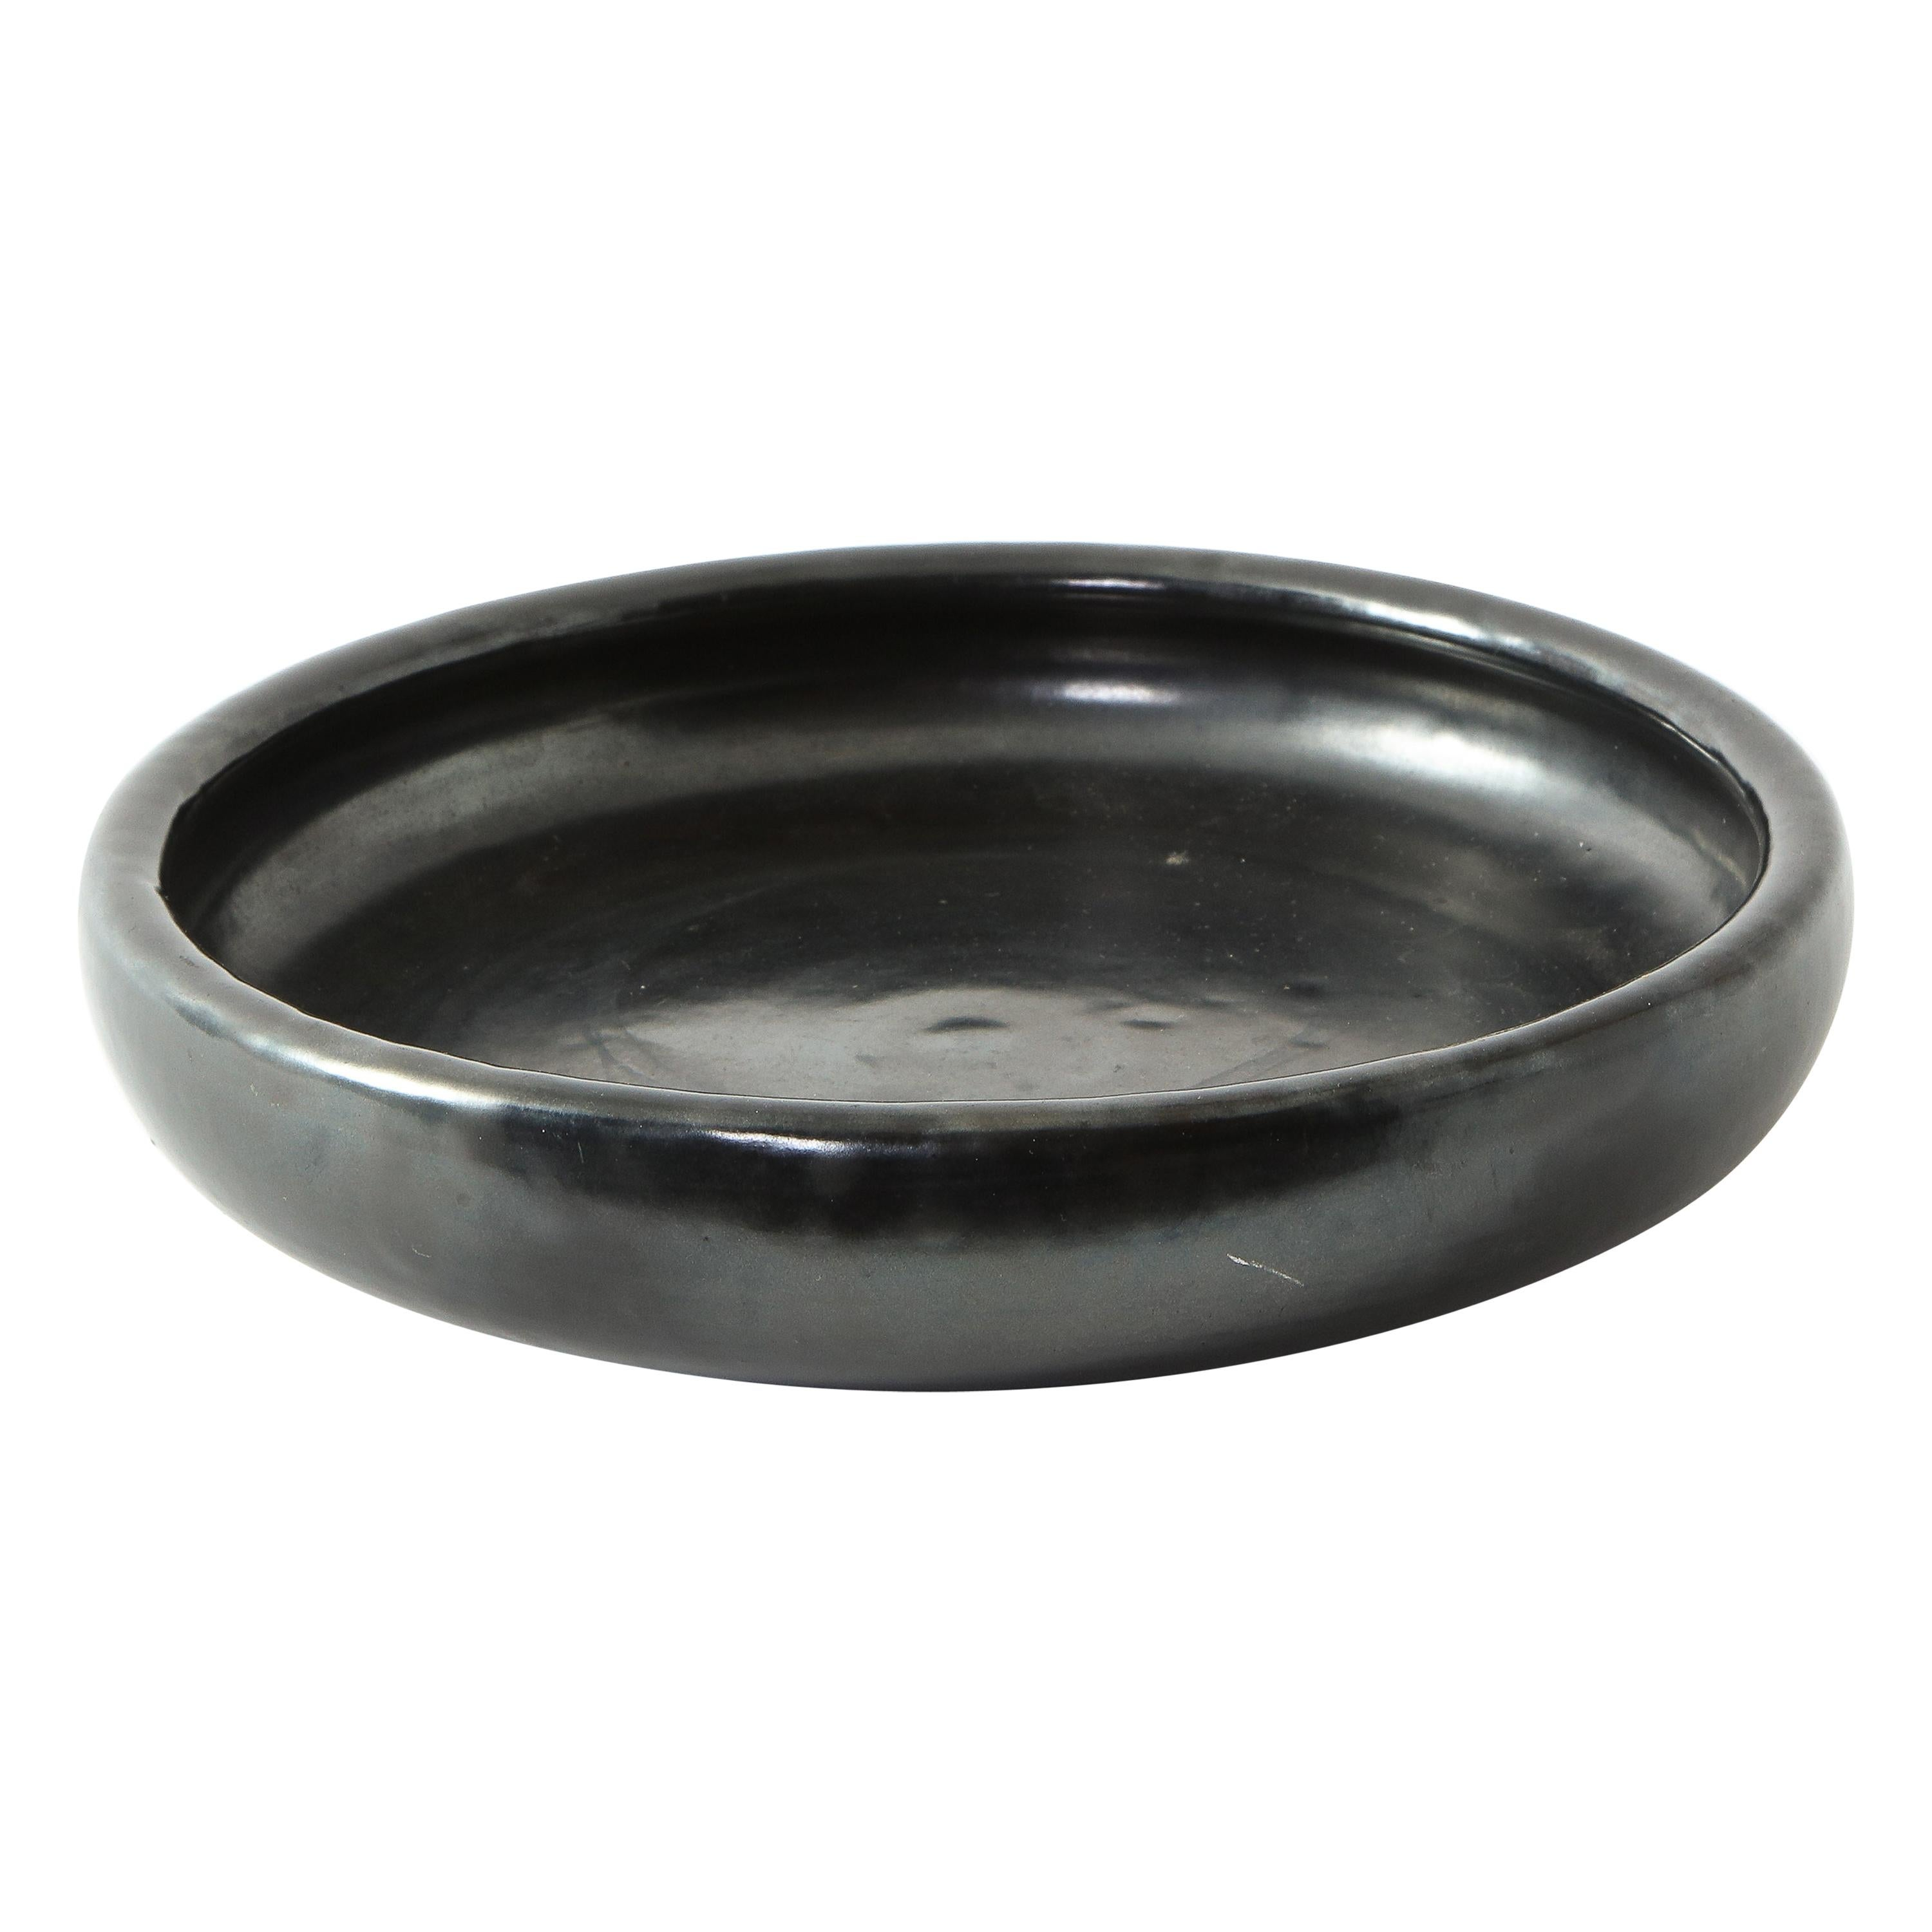 Black Ceramic Dish by Accolay, France, 1960s